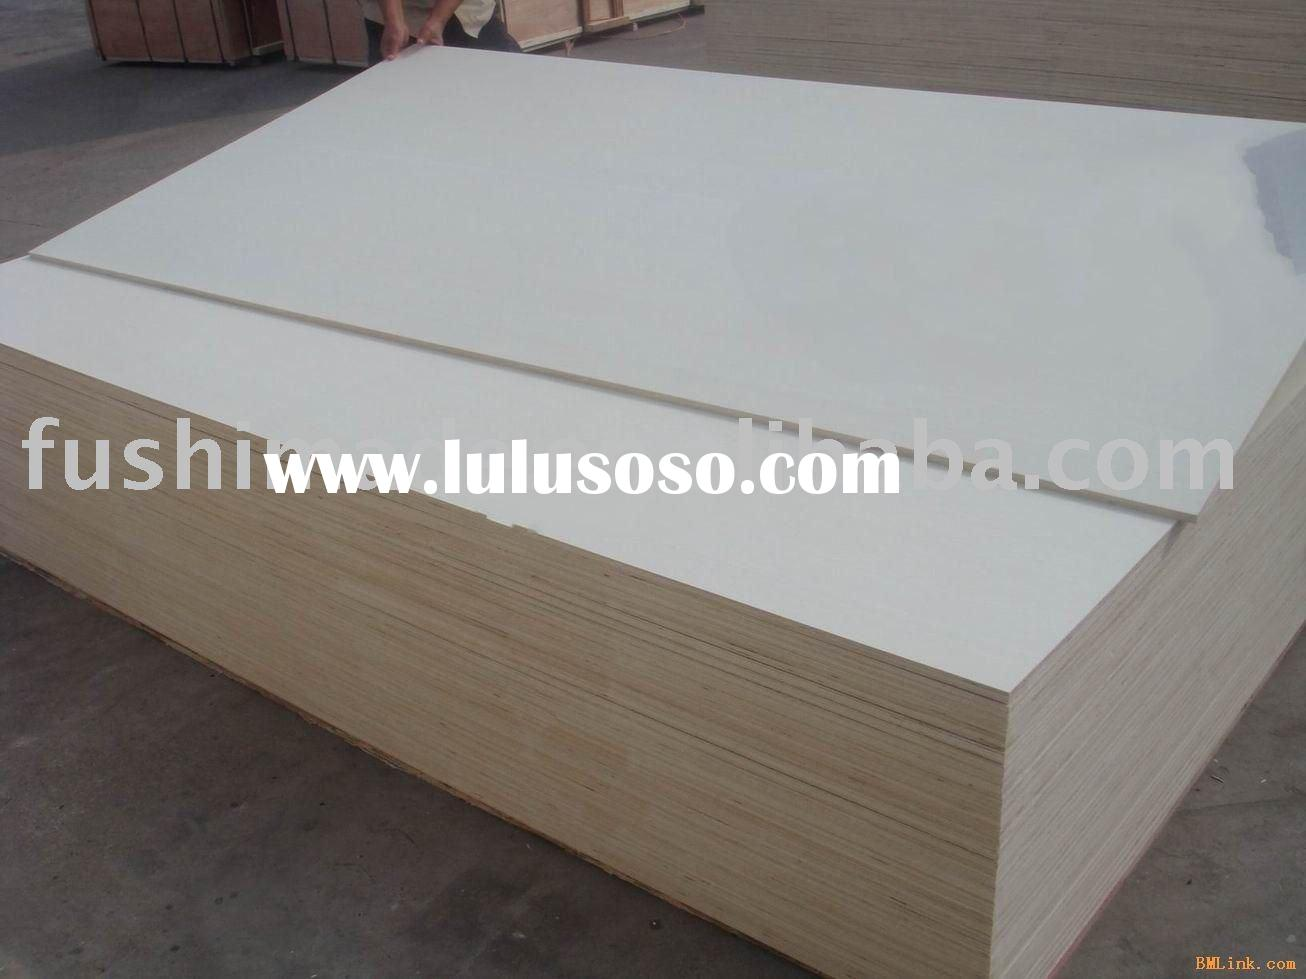 plywood for wood/veneer pallets